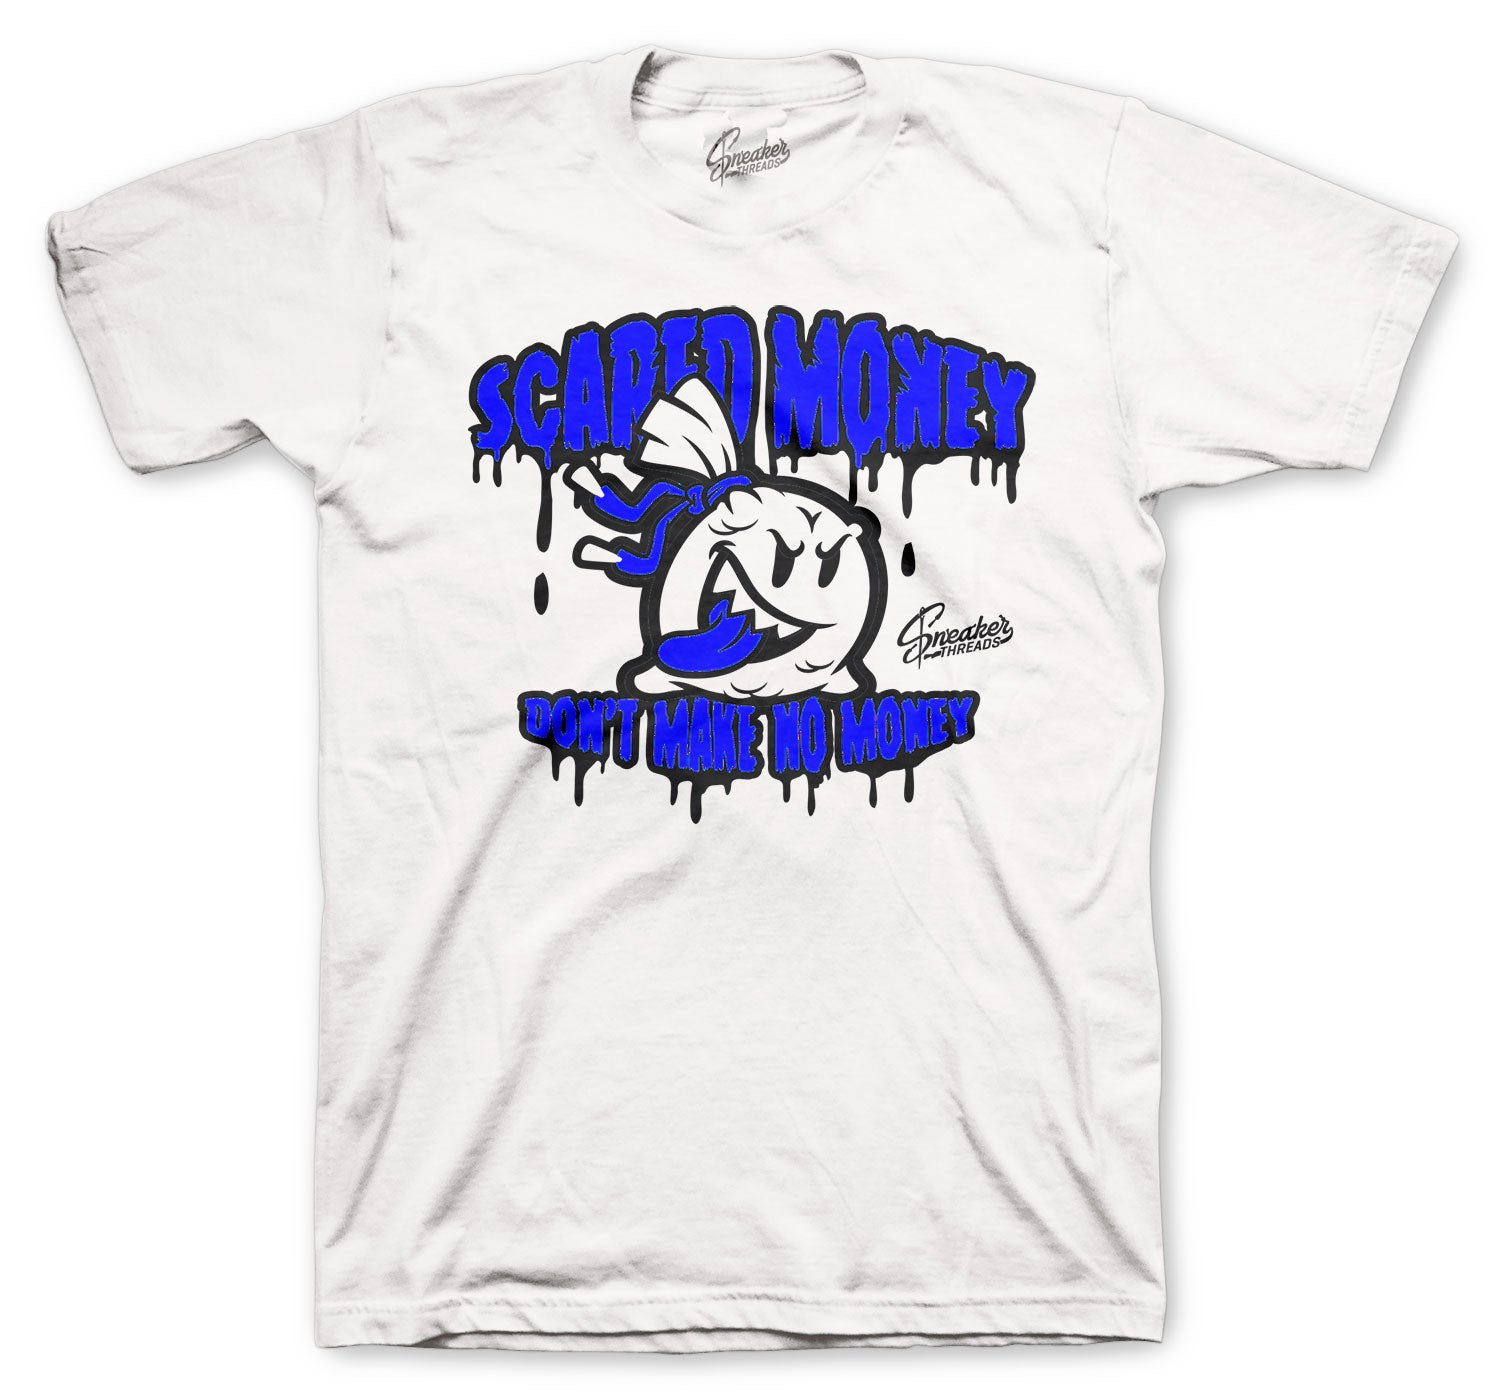 Jordan 14 Hyper Royal Shirt - Scared Money - White